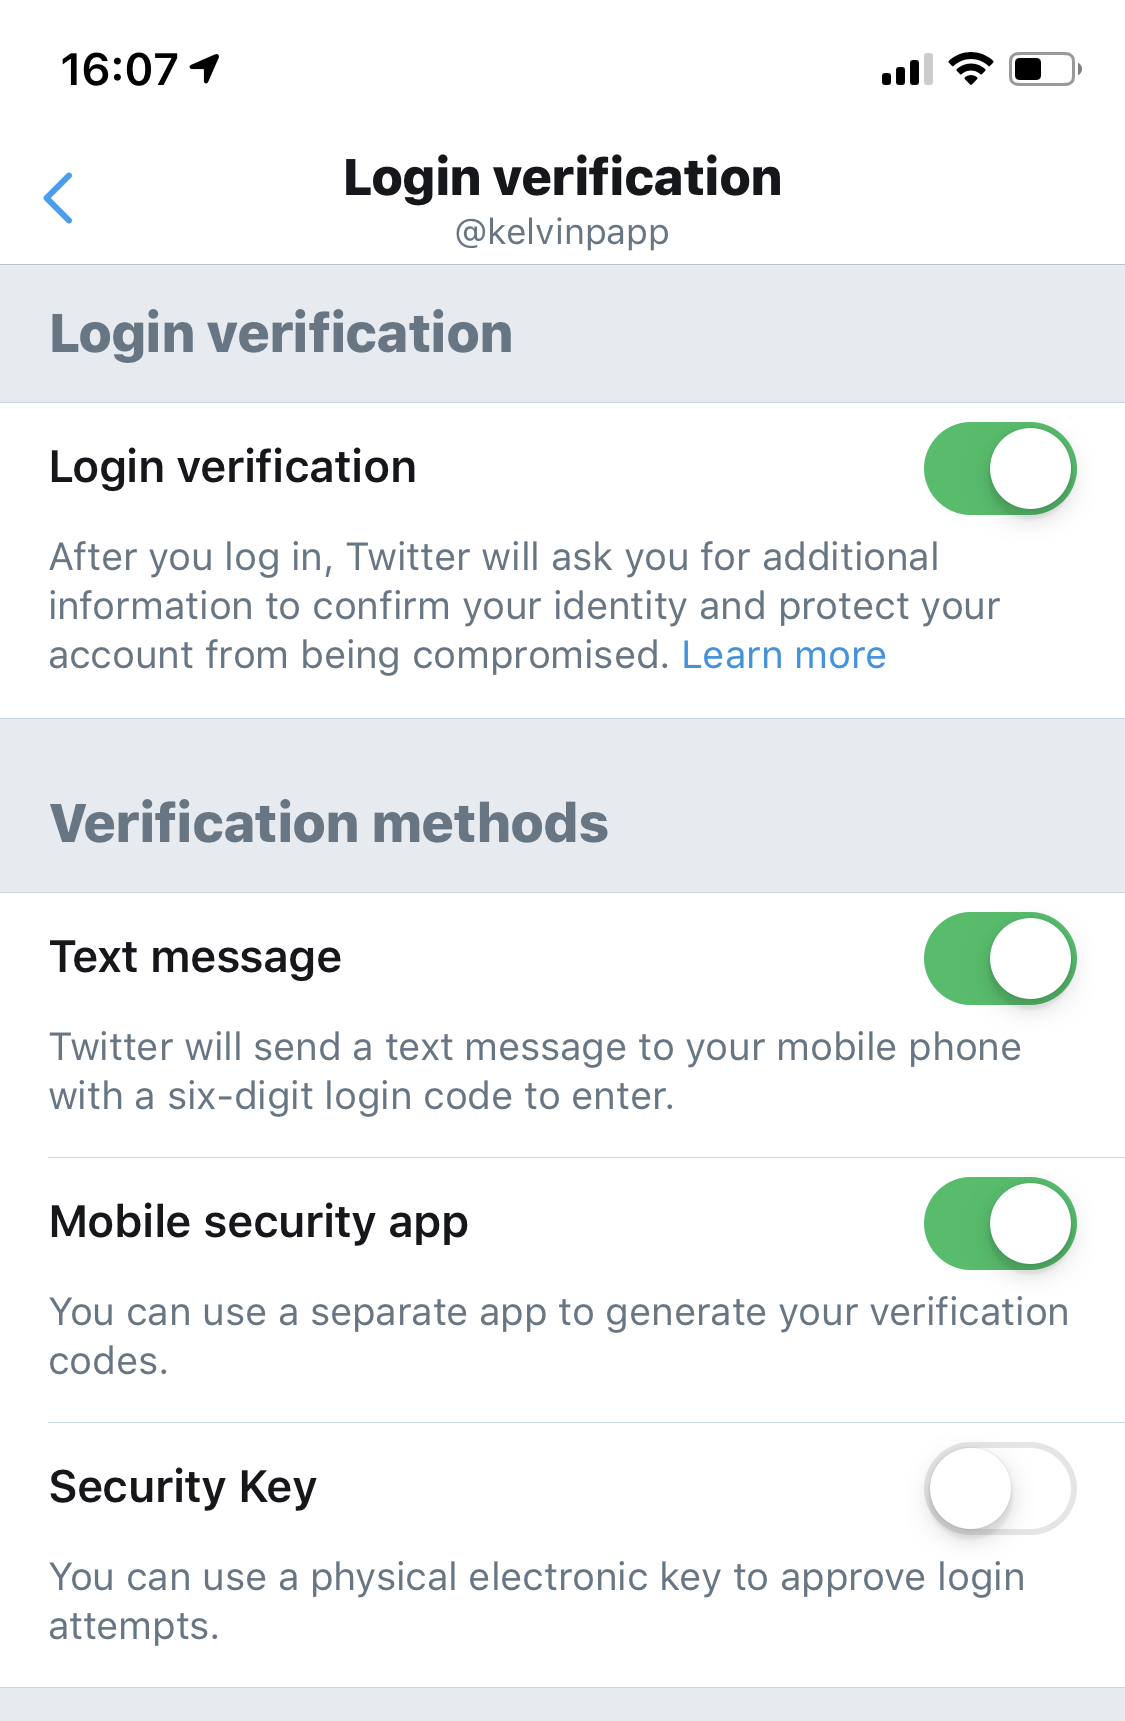 Login Verification Screen with SMS and Mobile Security App enabled